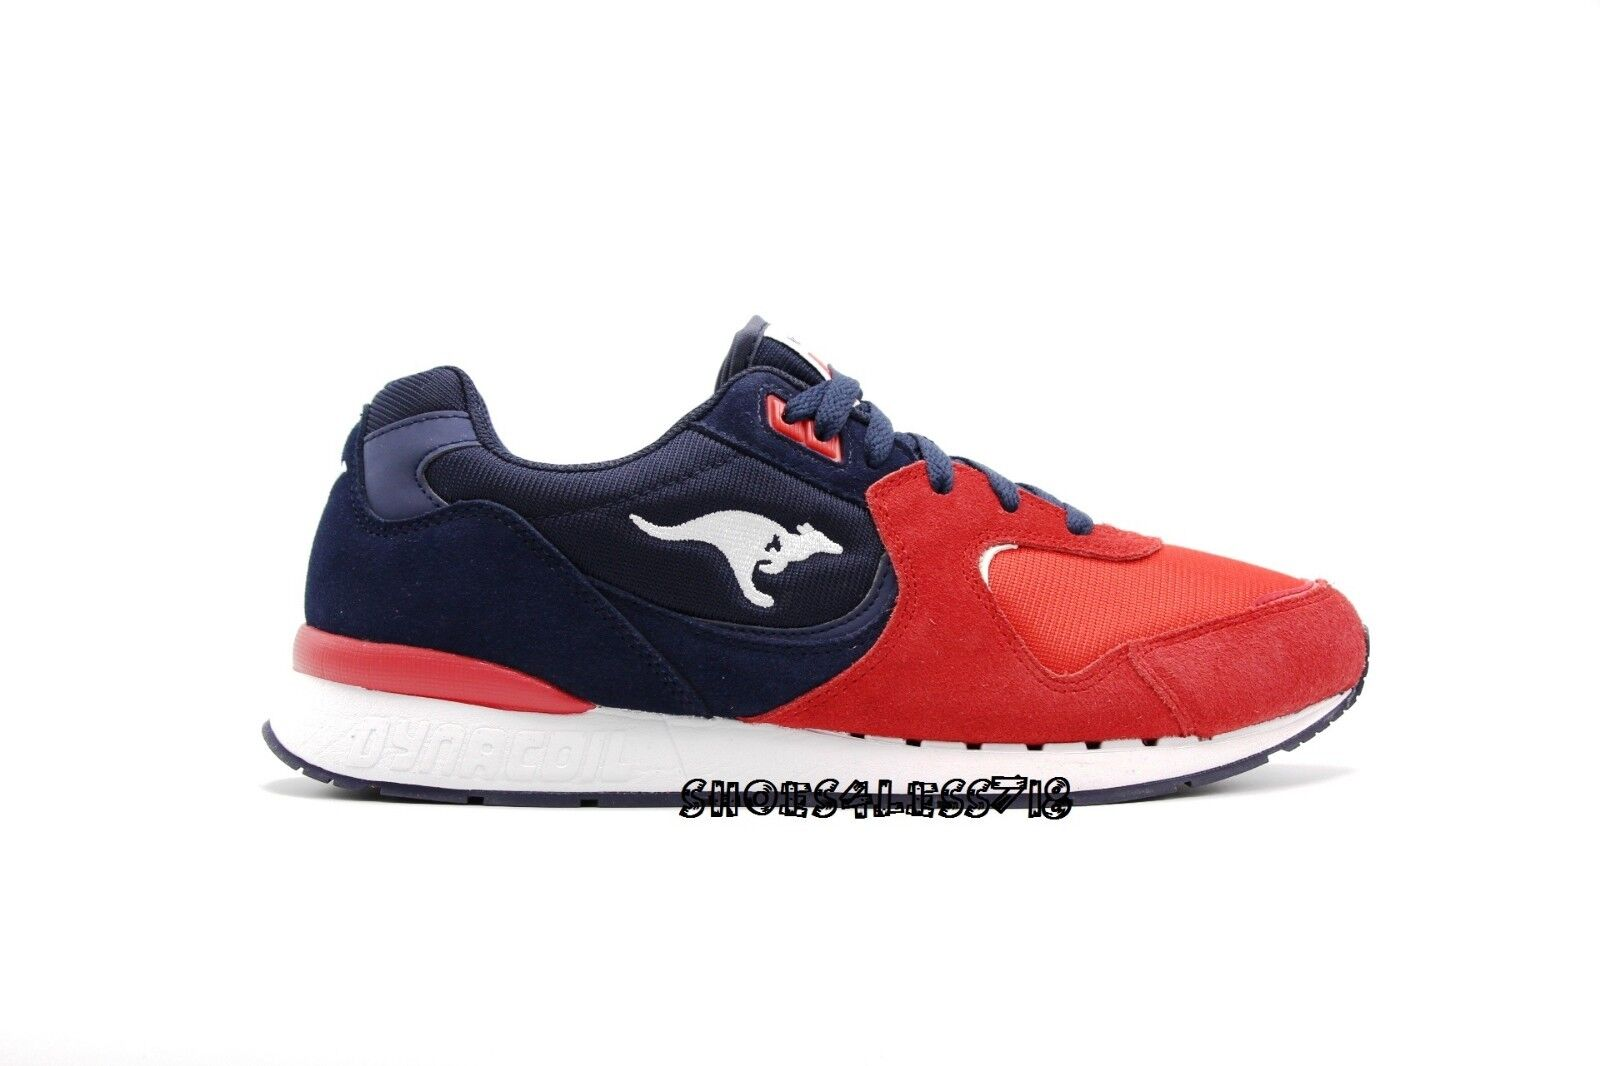 NEW MENS KANGAROOS ROOS 2 rot NAVY Weiß SUEDE LACE UP RUNNING Turnschuhe